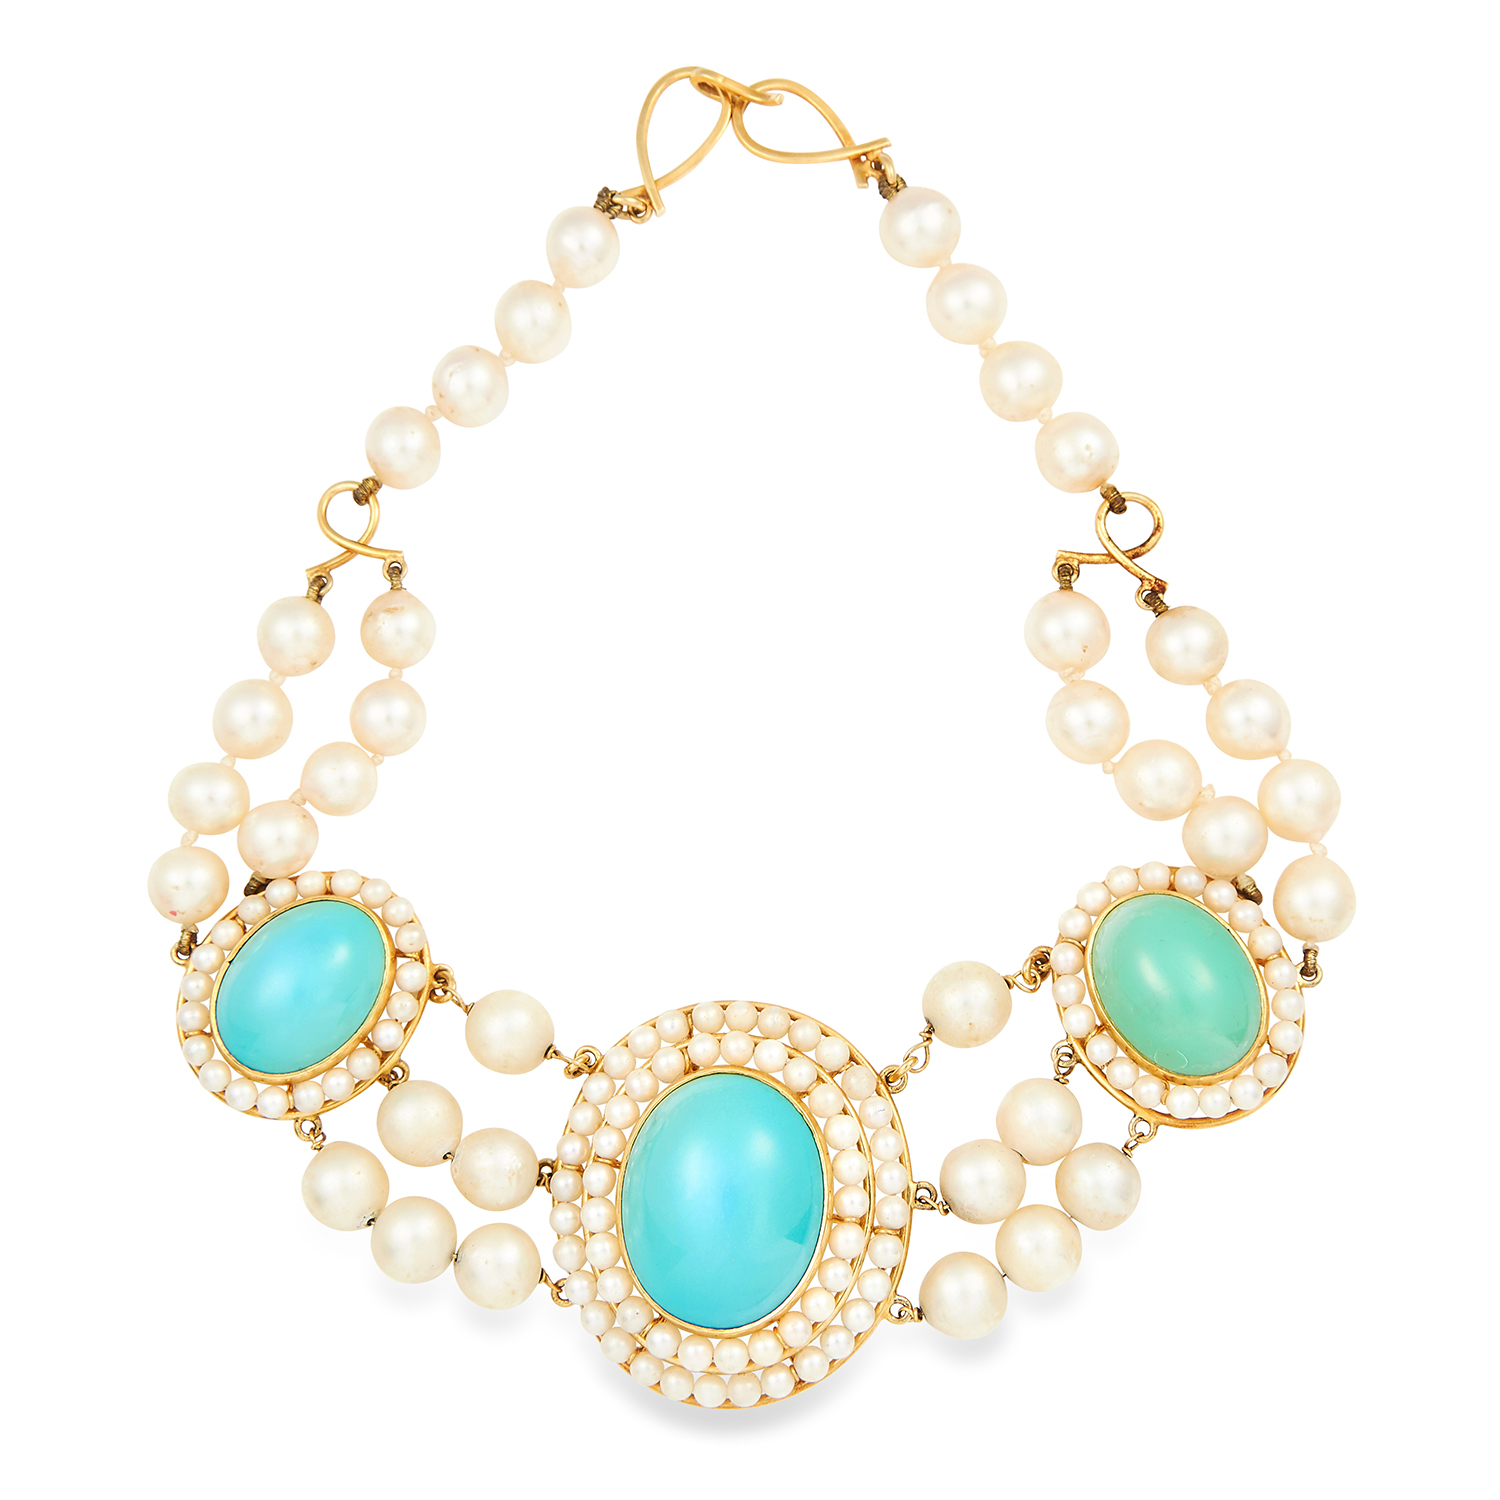 Los 44 - TURQUOISE AND PEARL EARRINGS AND NECKLACE SUITE set with cabochon turquoise in a cluster of